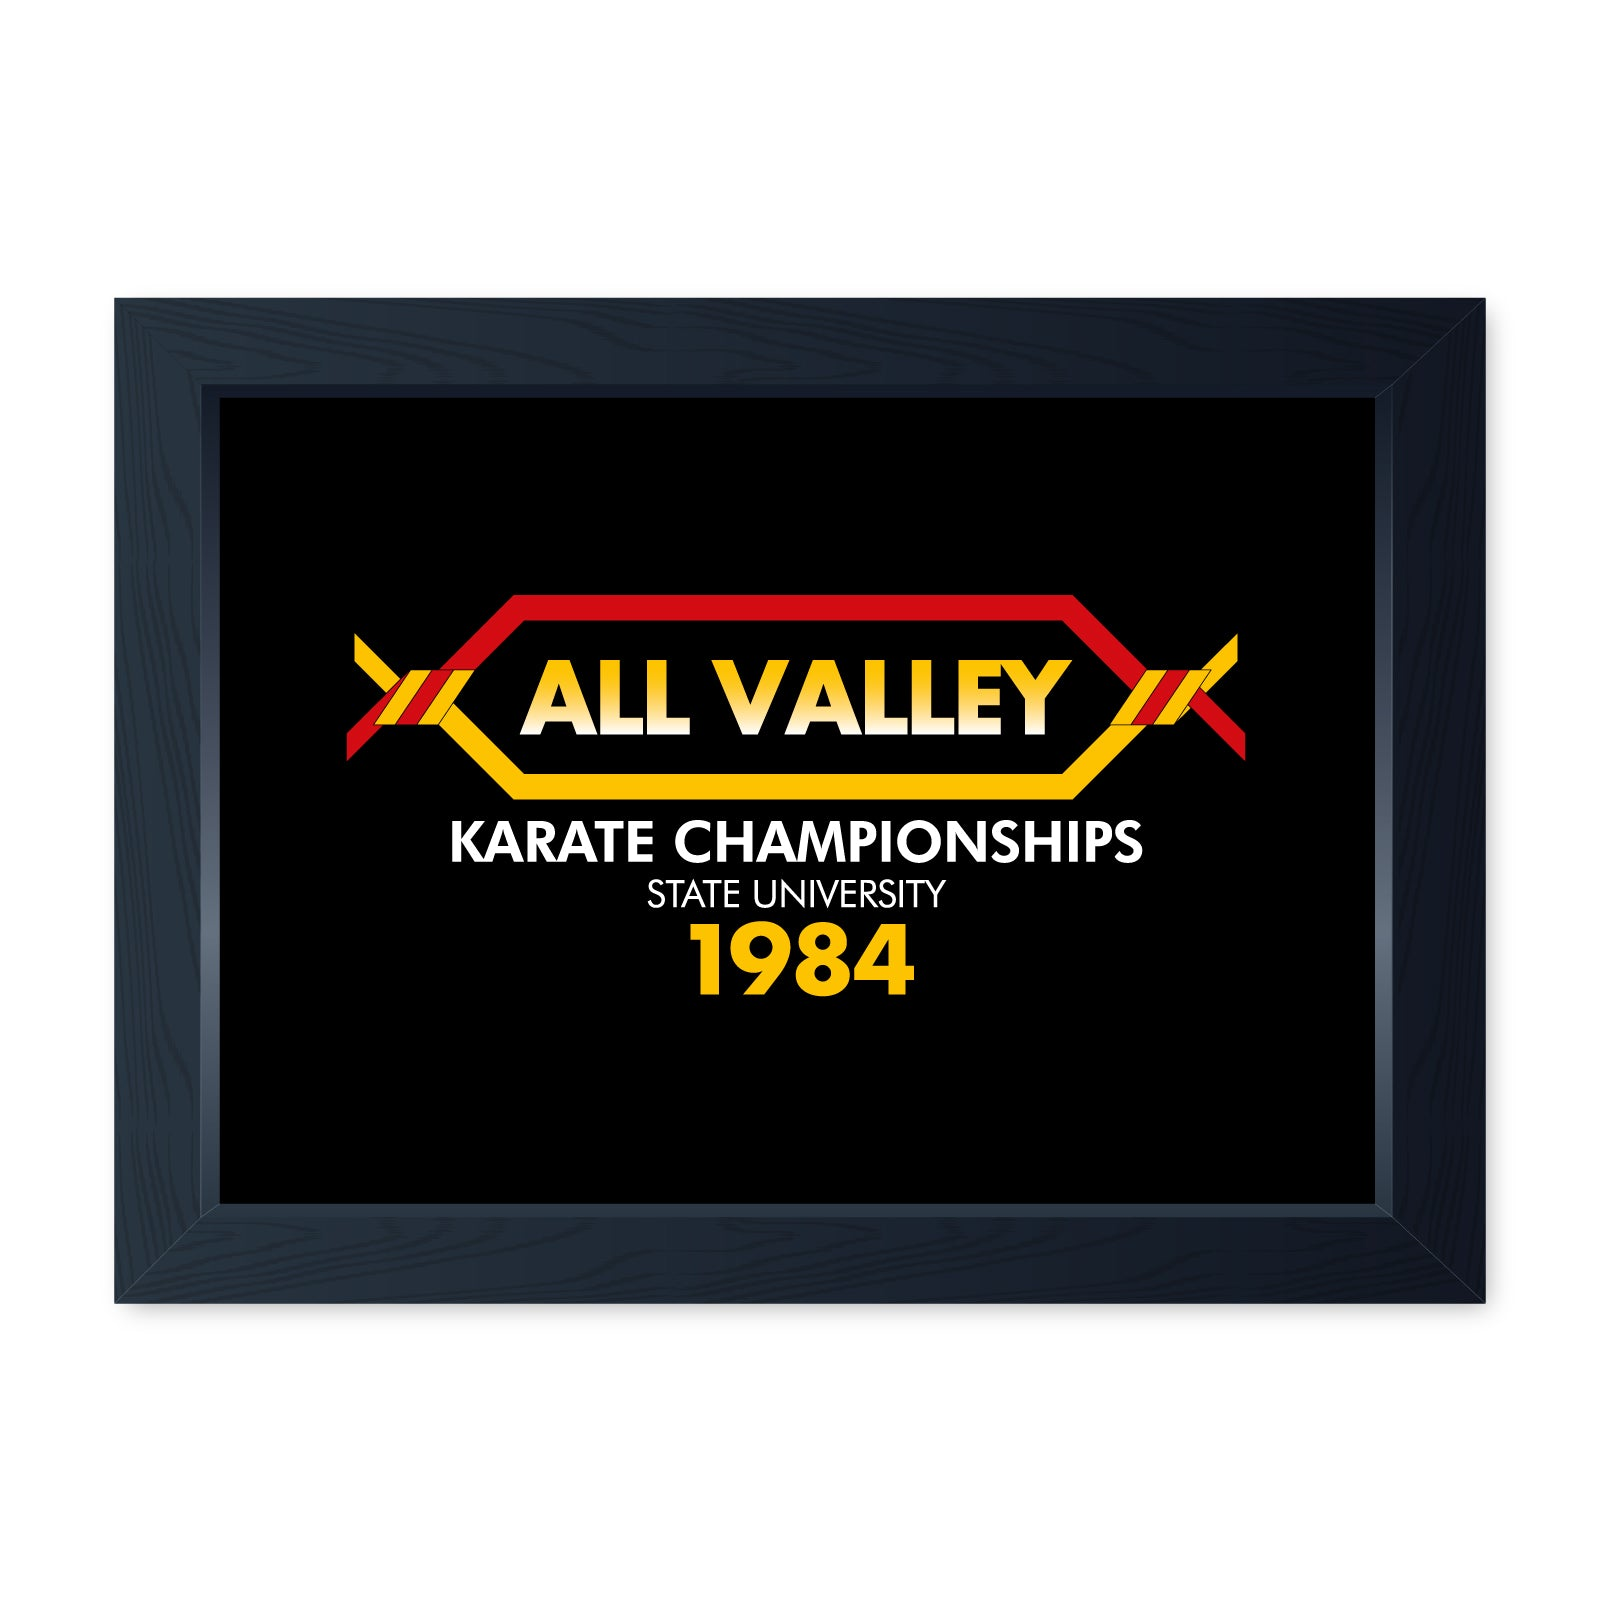 All Valley Karate Championships, Movie Inspired Quality Framed Print - Cinema Room Man Cave Art Wall Art